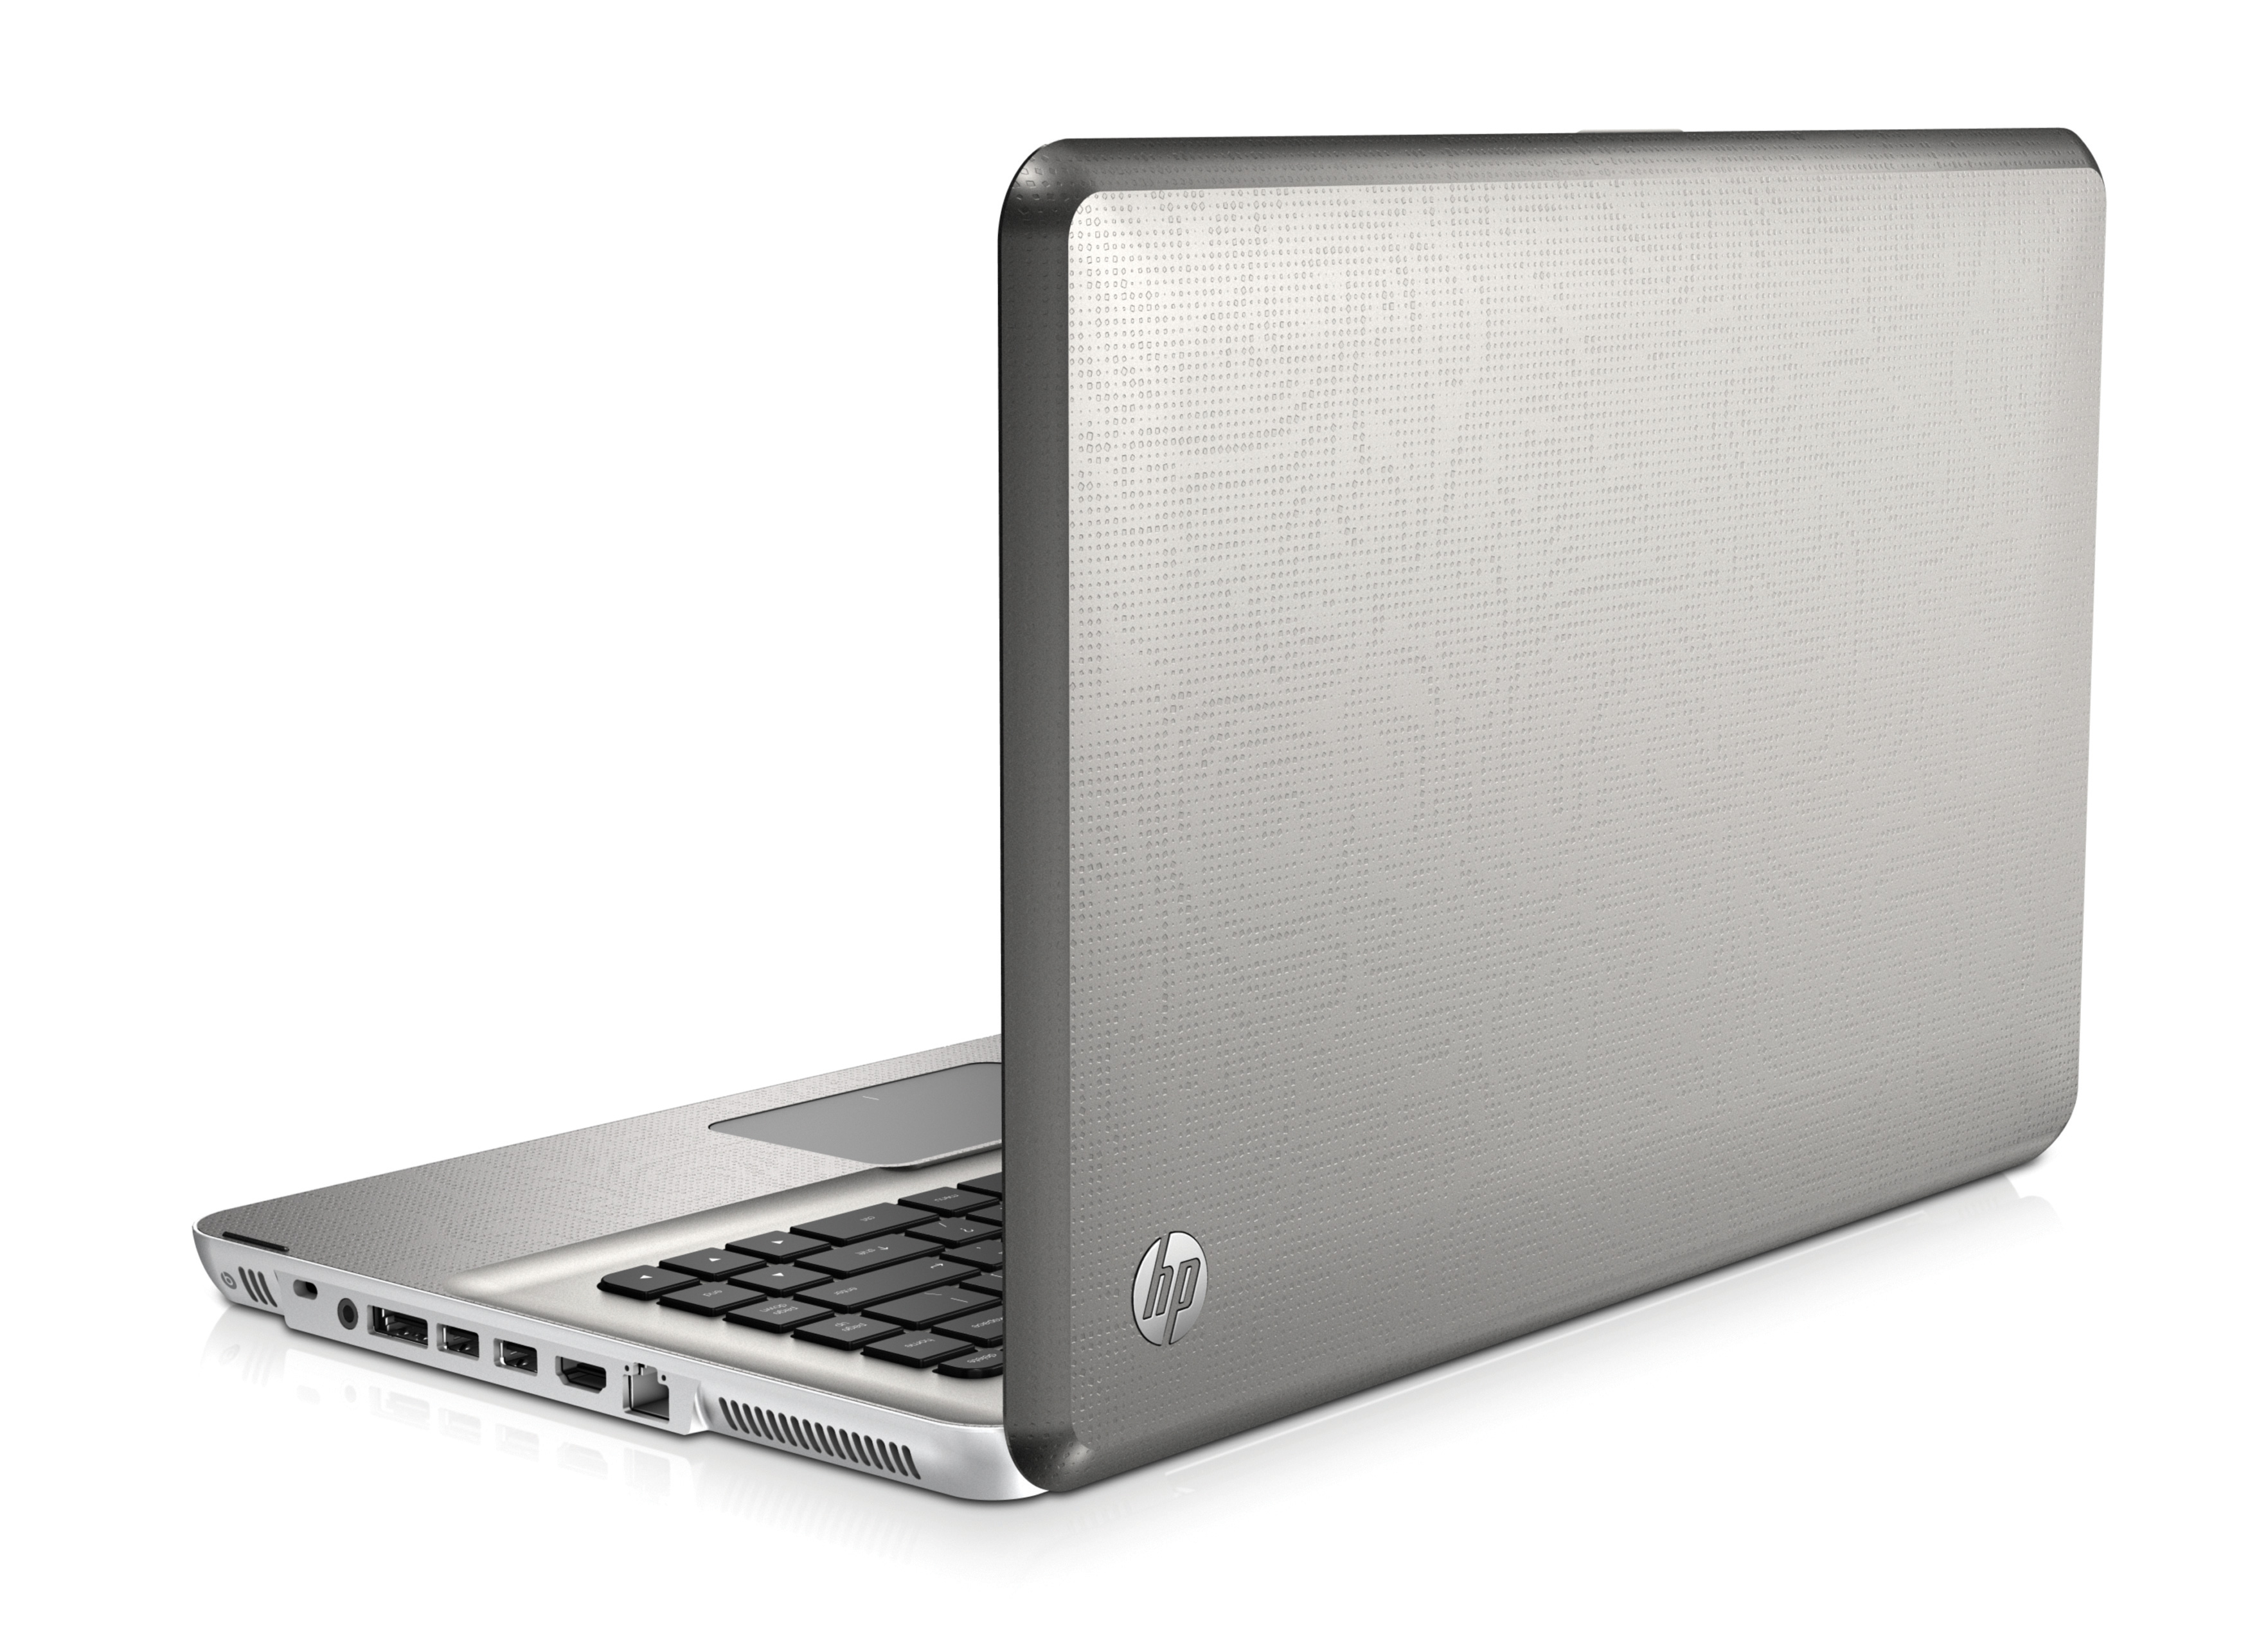 Gallery: HP Envy 13 and Envy 15